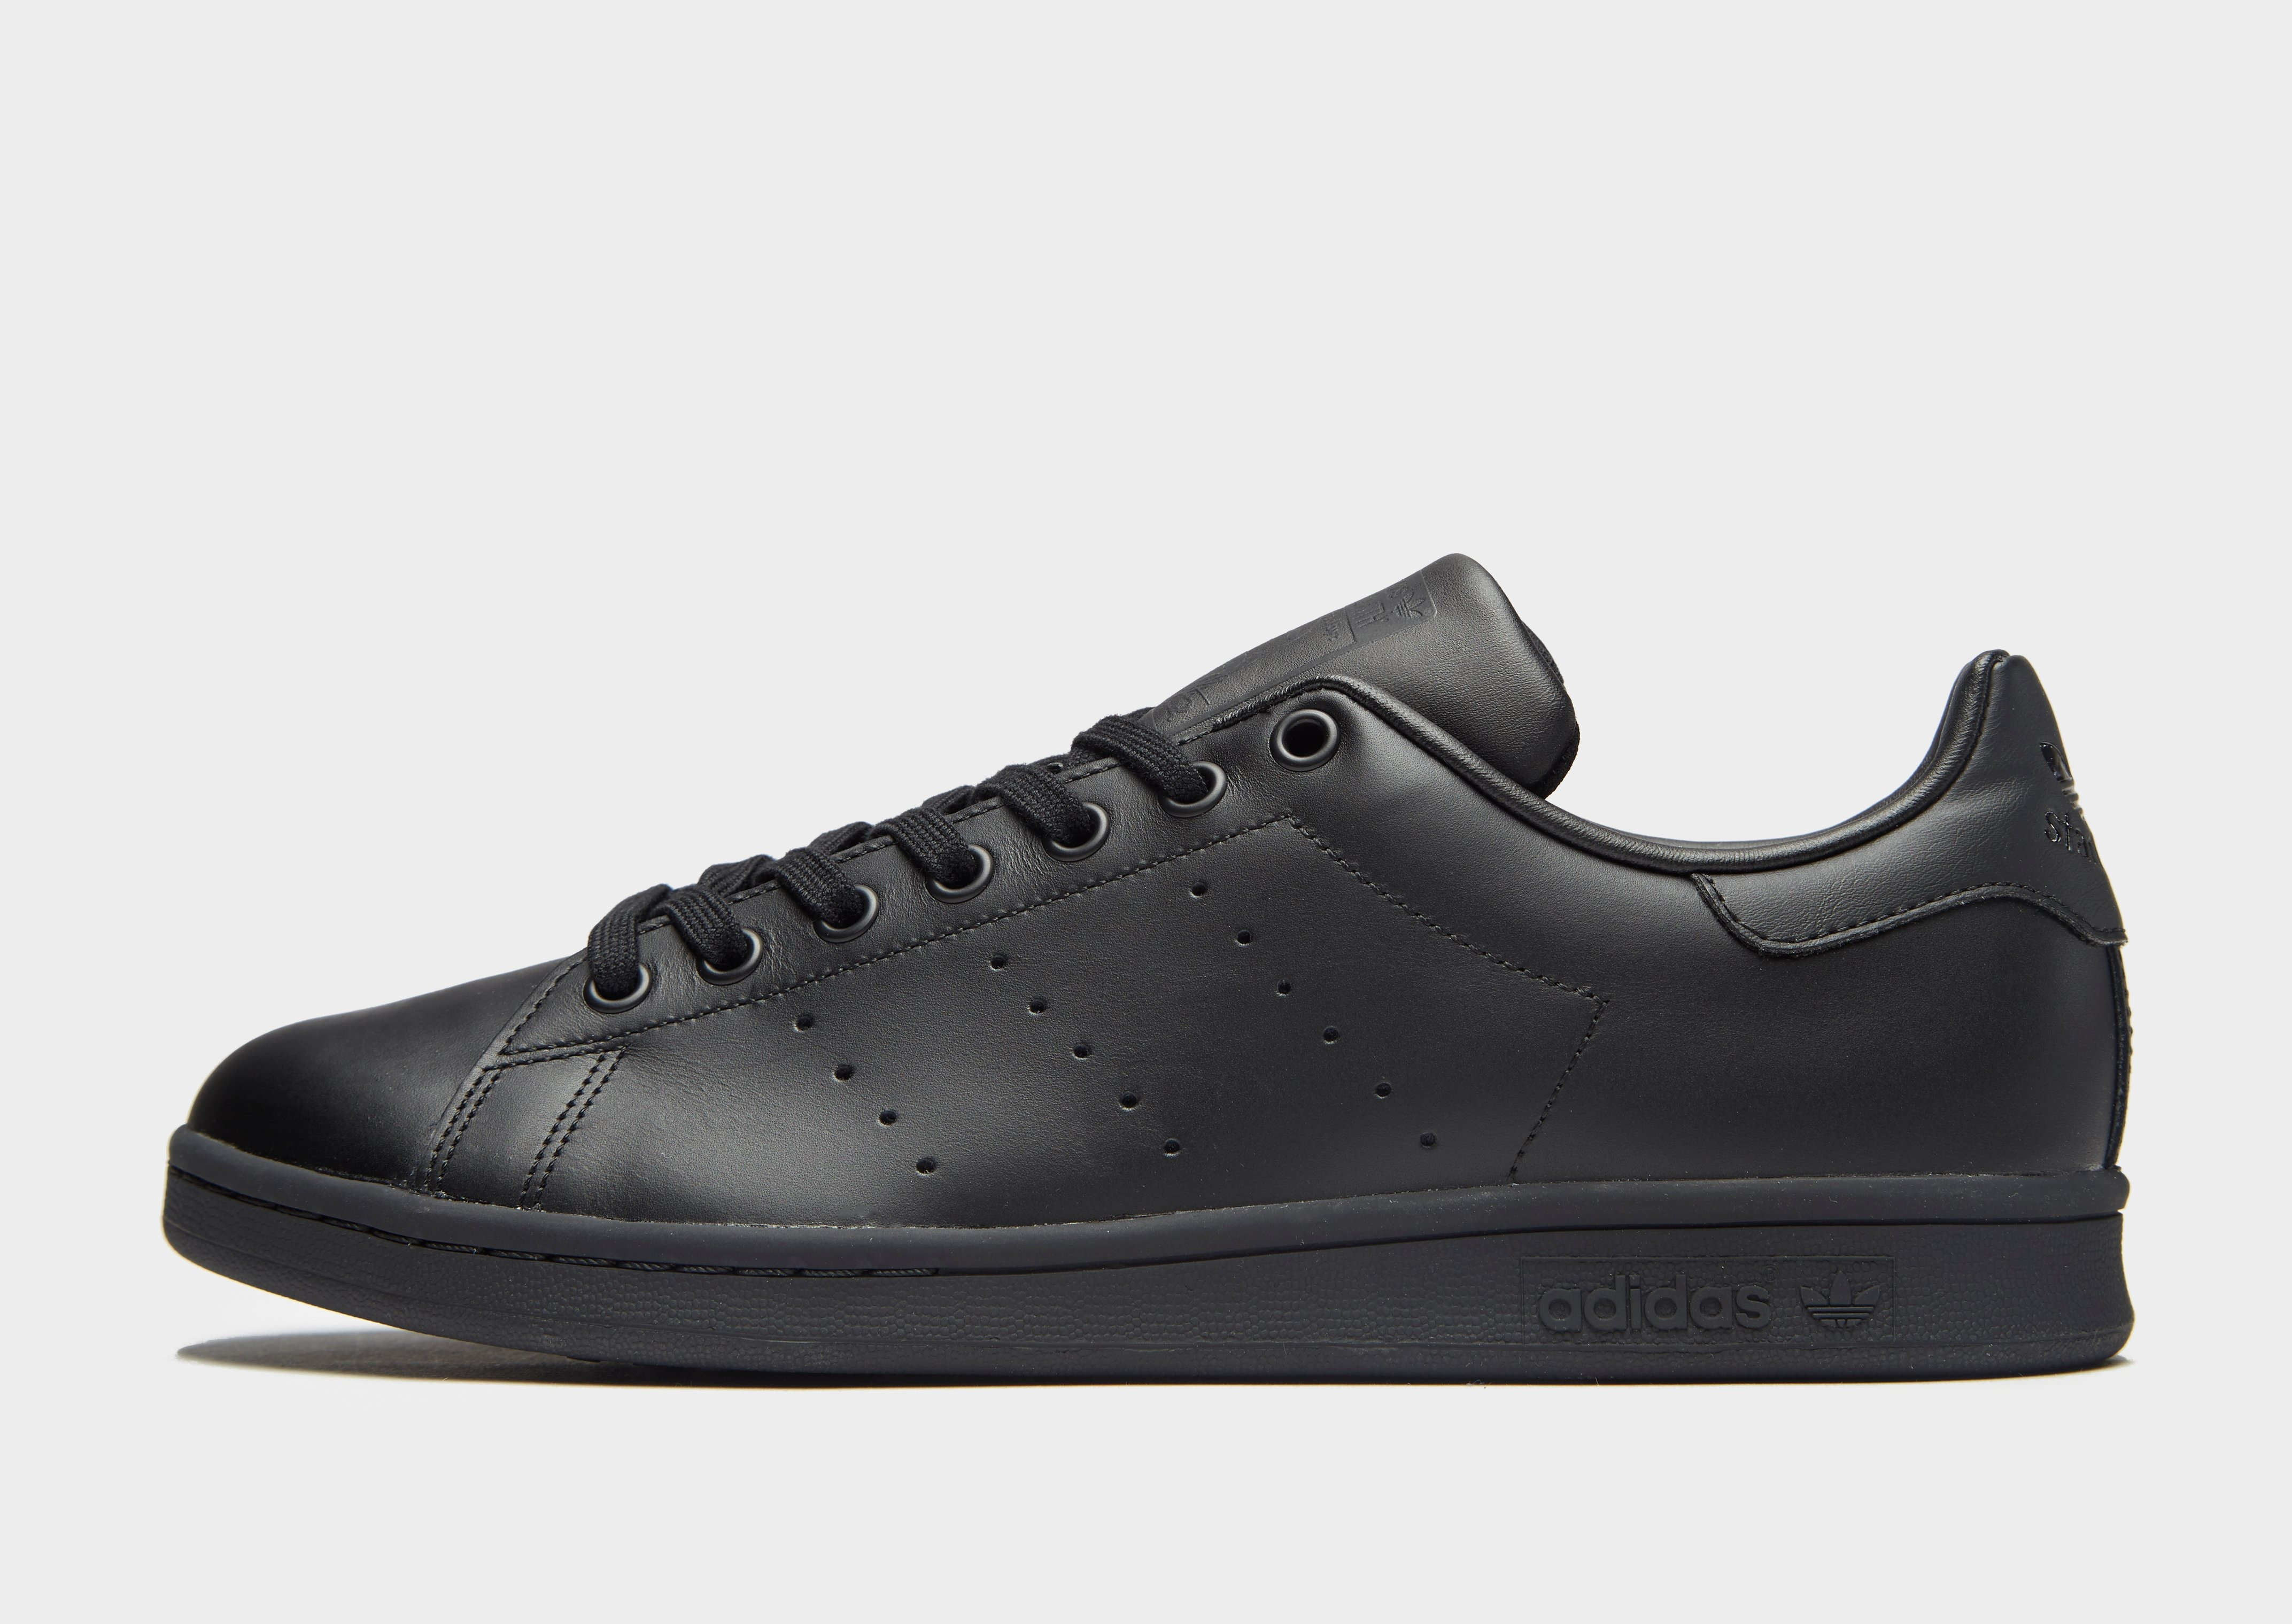 adidas originals stan smith leather trainers in sort